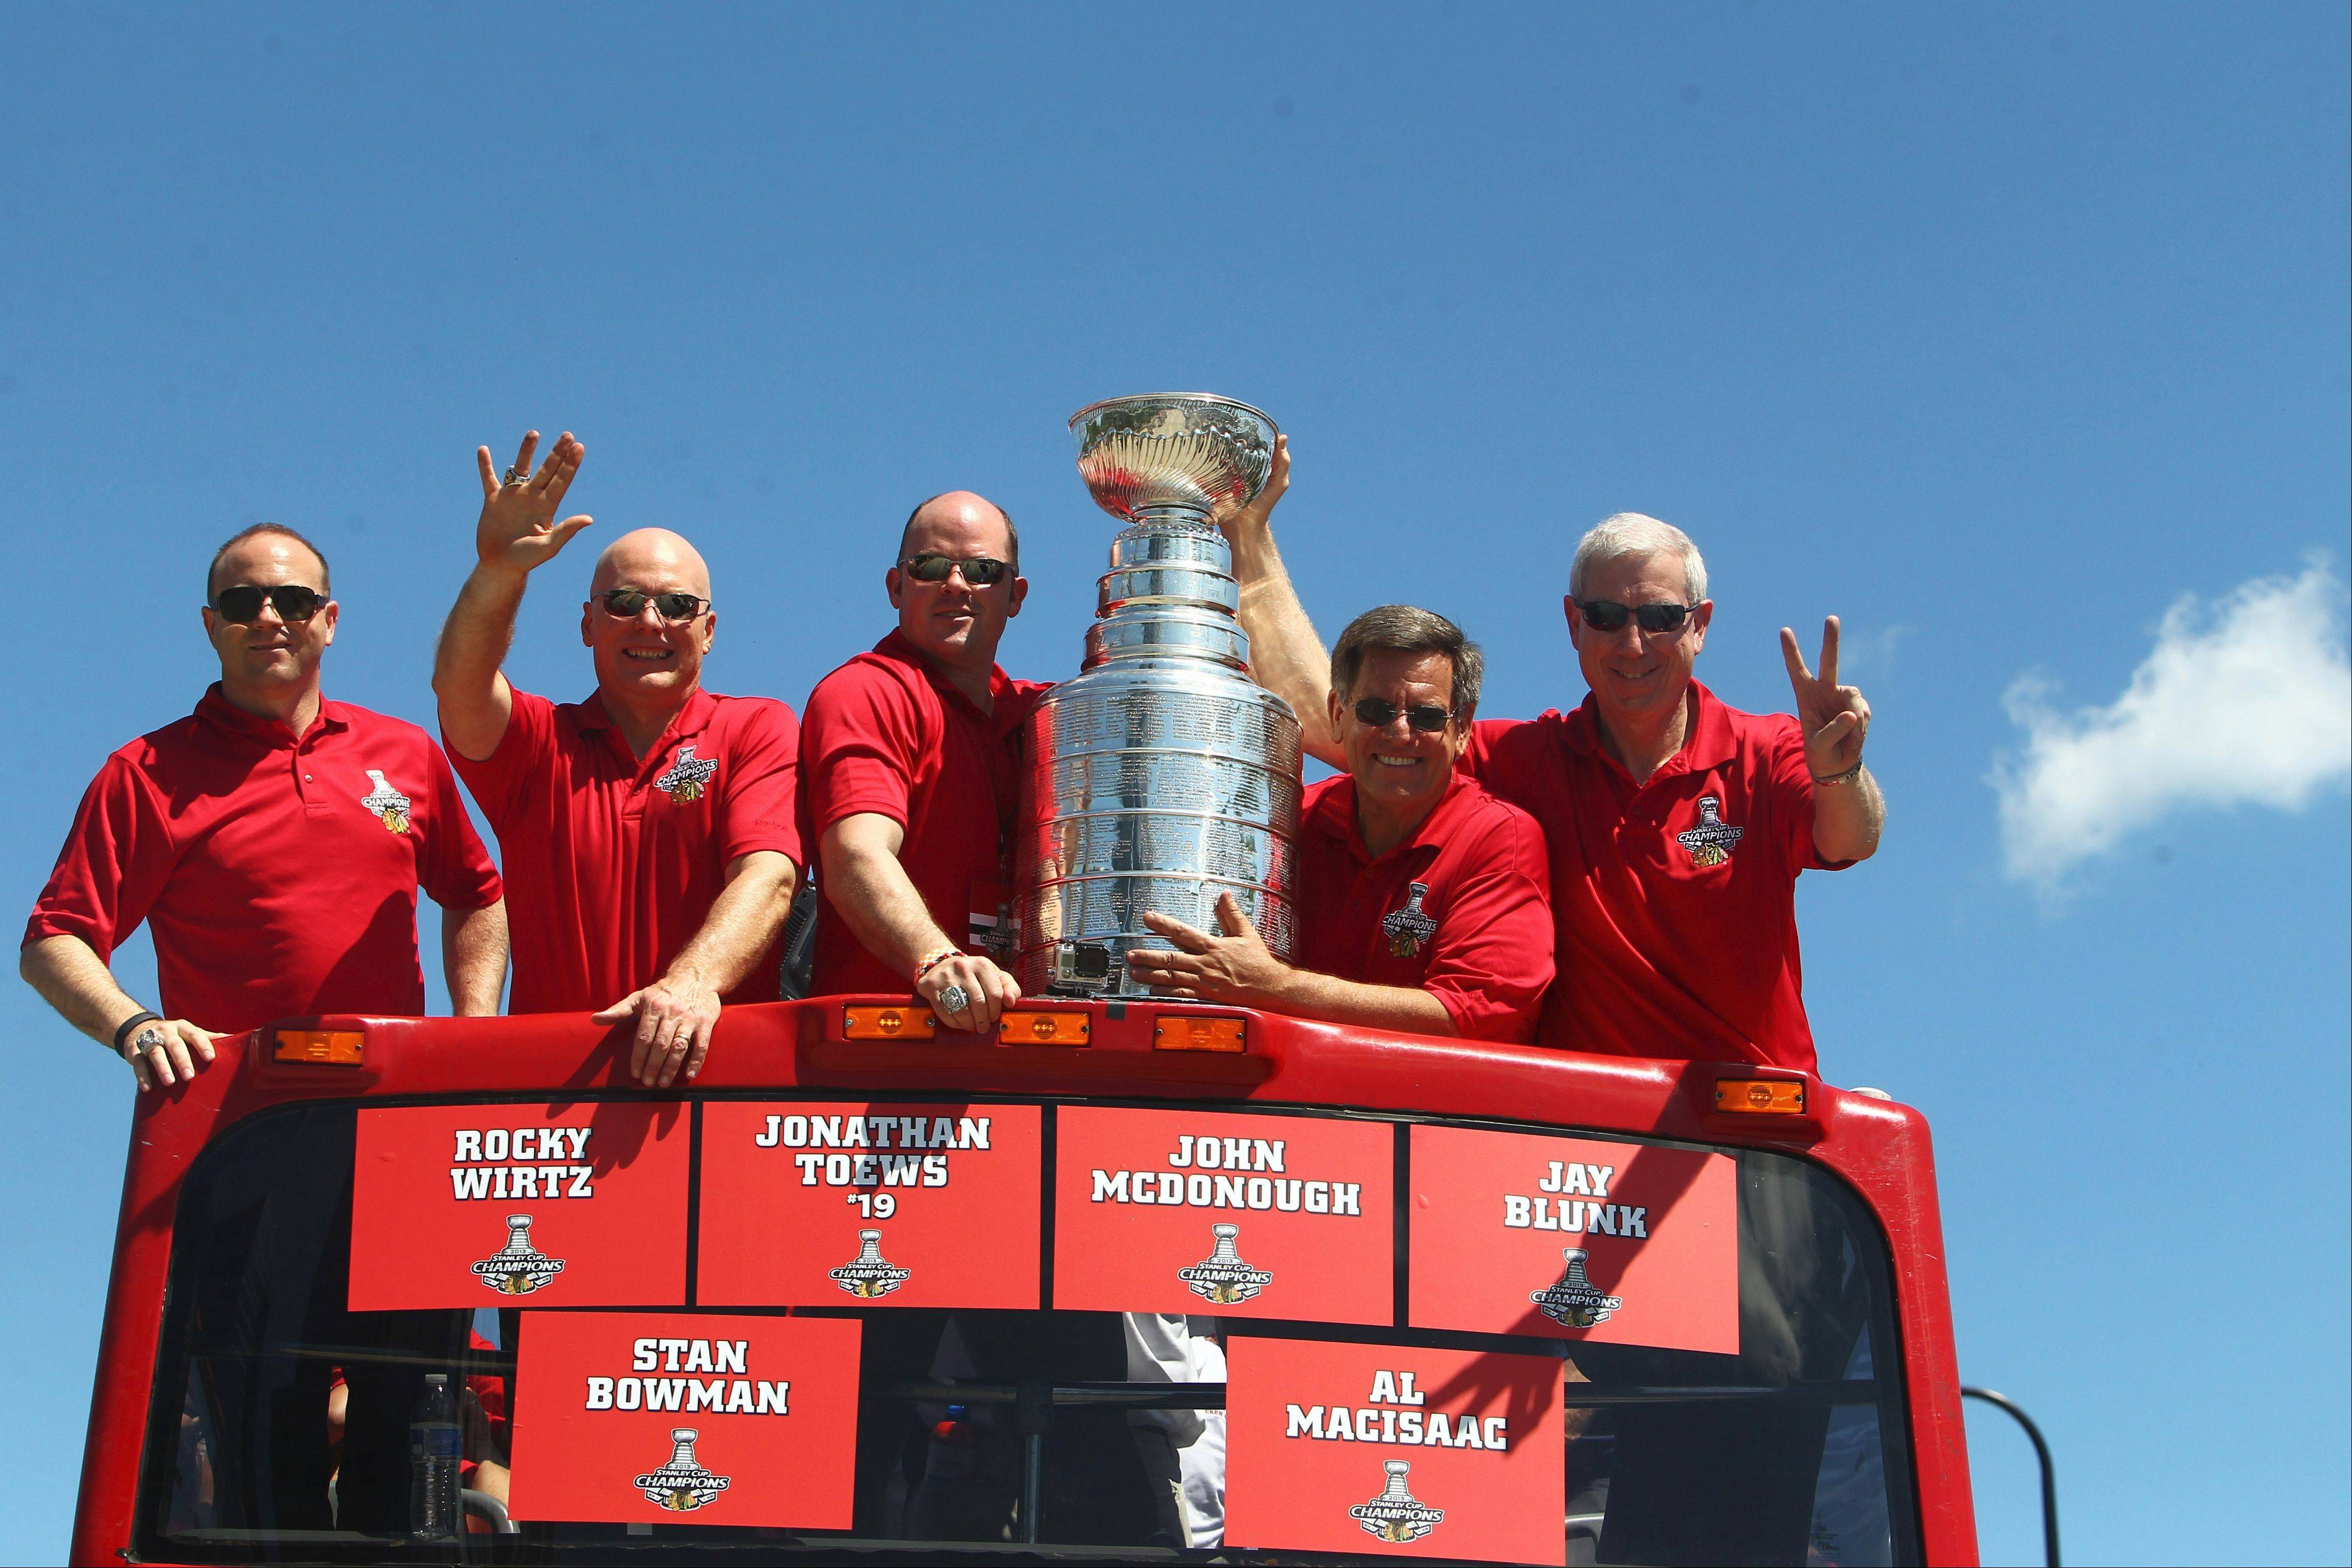 From left: Stan Bowman, Jay Blunk, Al MacIsaac, Rocky Wirtz and John McDonough during the Stanley Cup parade in Chicago.